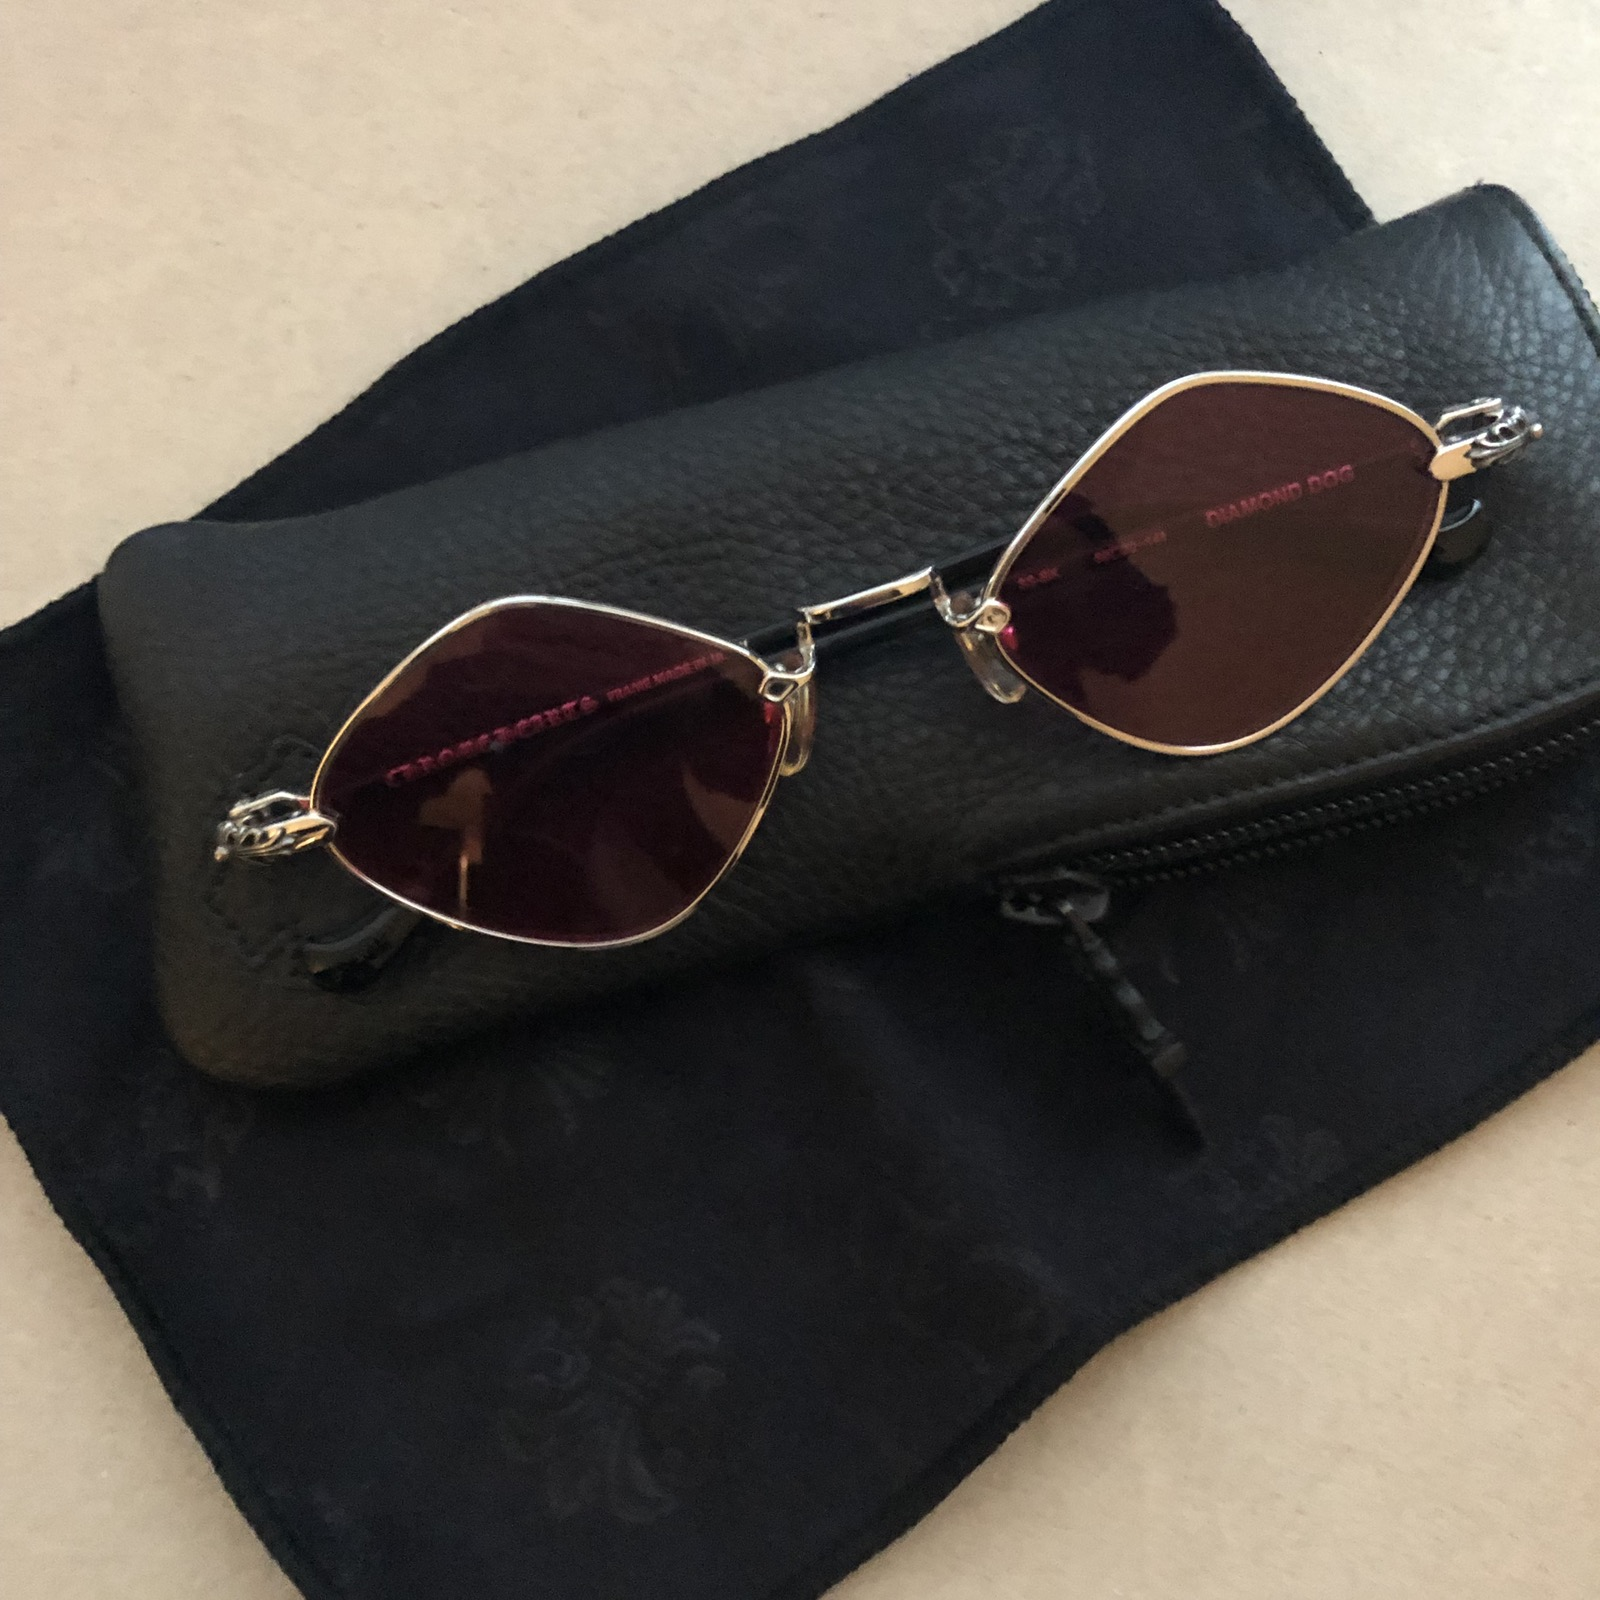 a56e53e2f39 Chrome Hearts Chrome Hearts Diamond Dog Sunglasses Size one size - Glasses  for Sale - Grailed